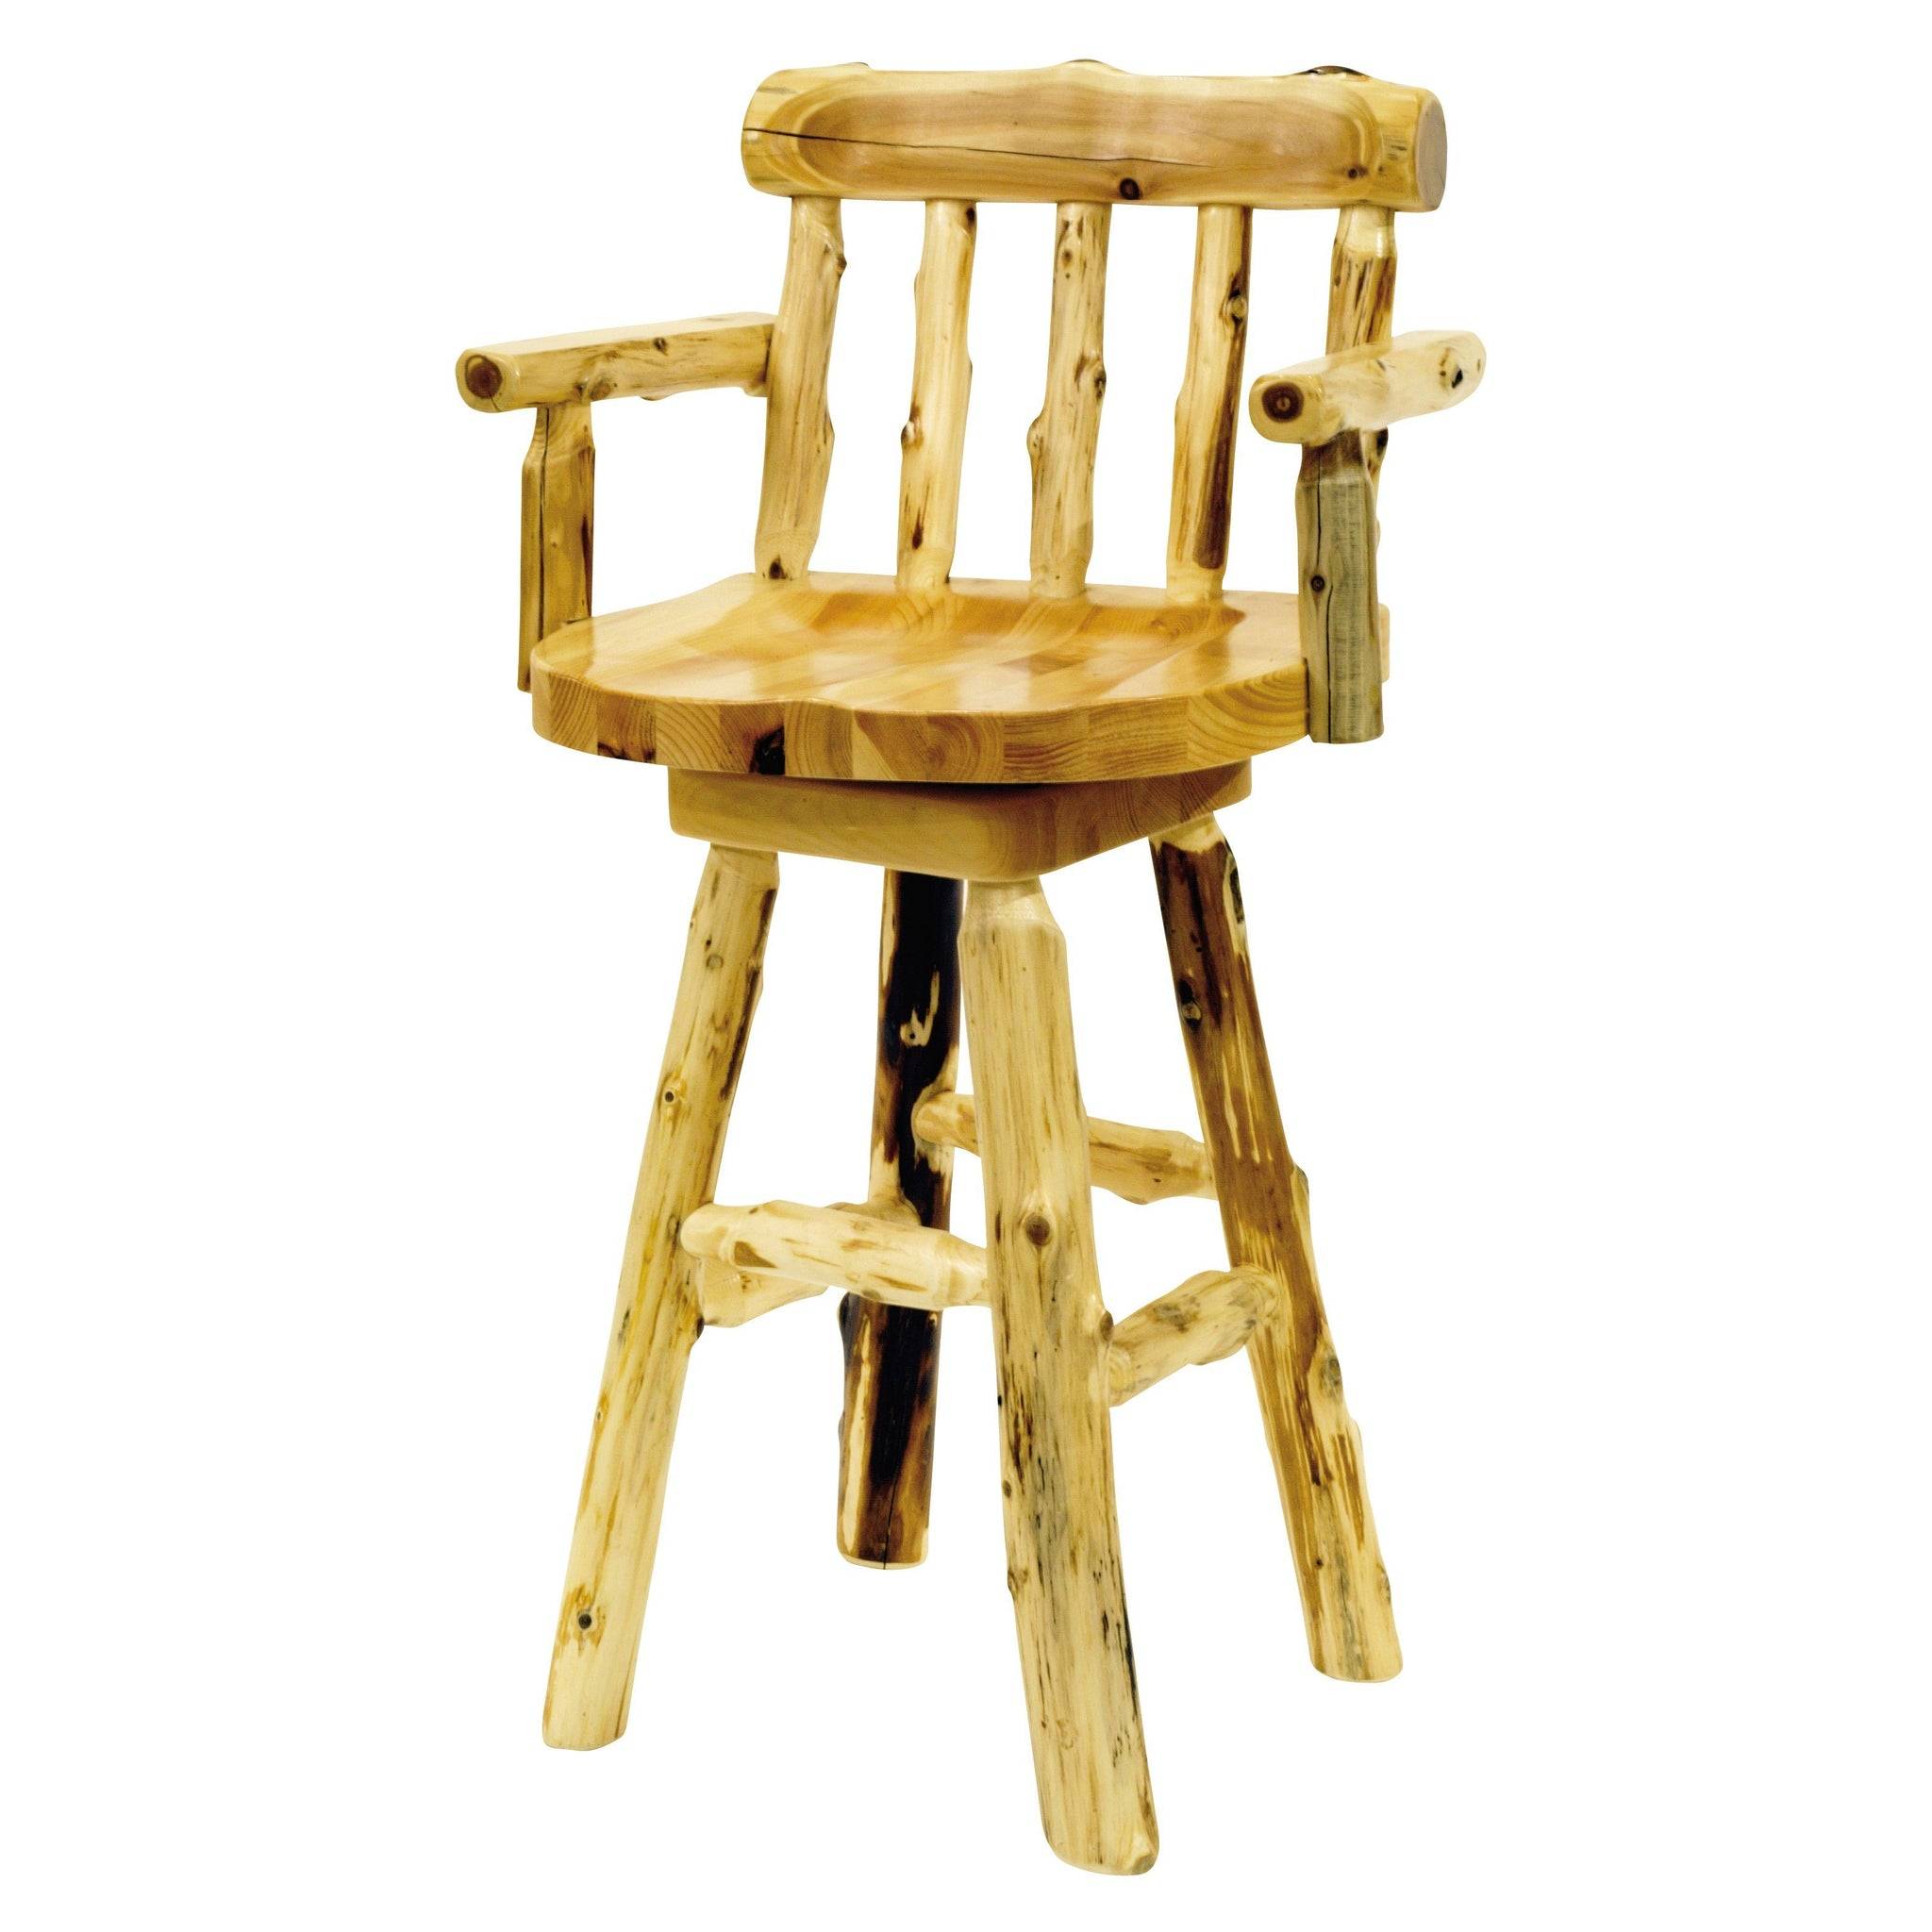 Prime Natural Cedar Log Counter Stool With Back And Arms 24 High Wood Seat Uwap Interior Chair Design Uwaporg